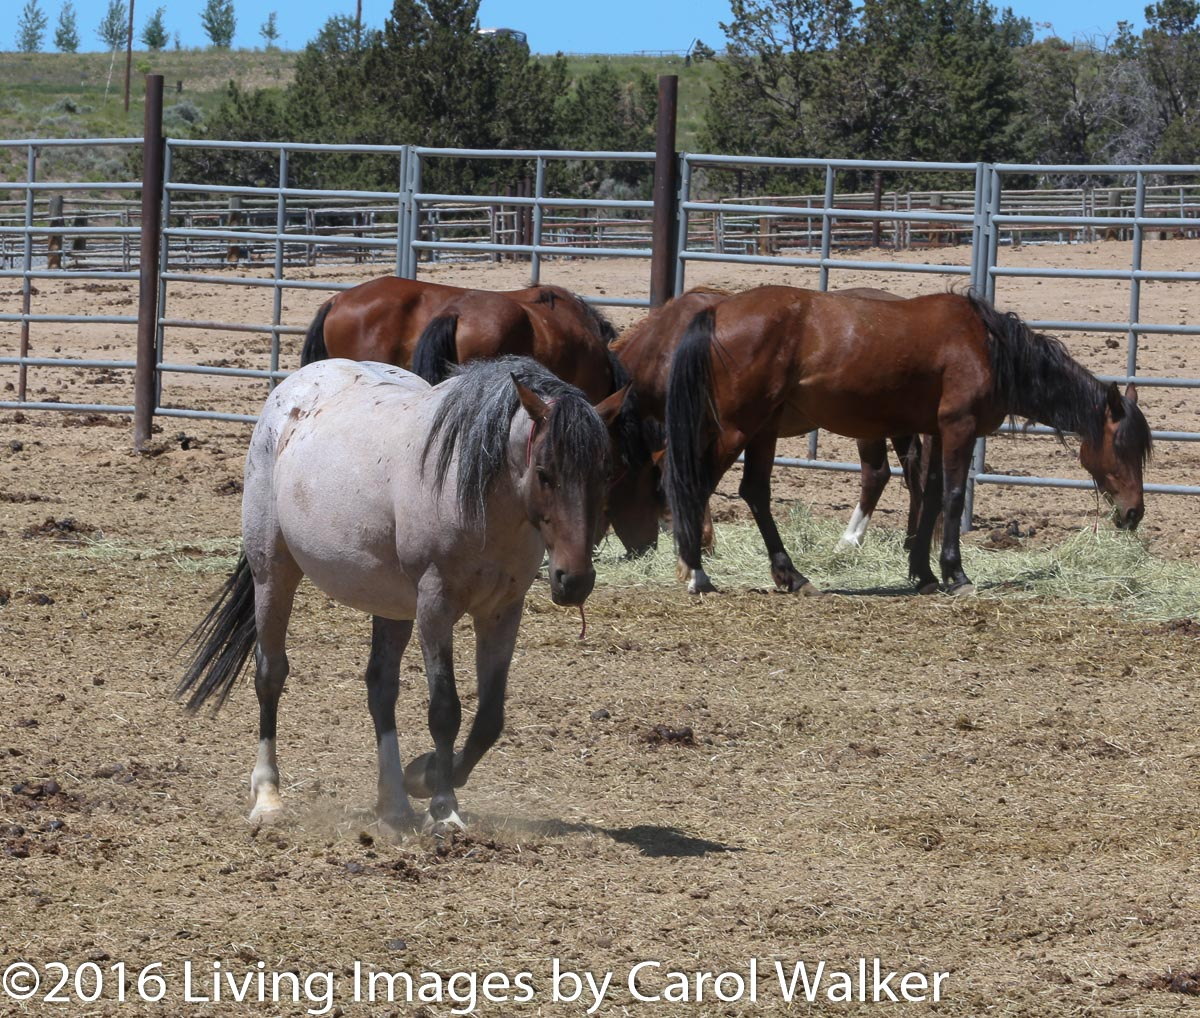 Pregnant mare - will she be in the experiment?